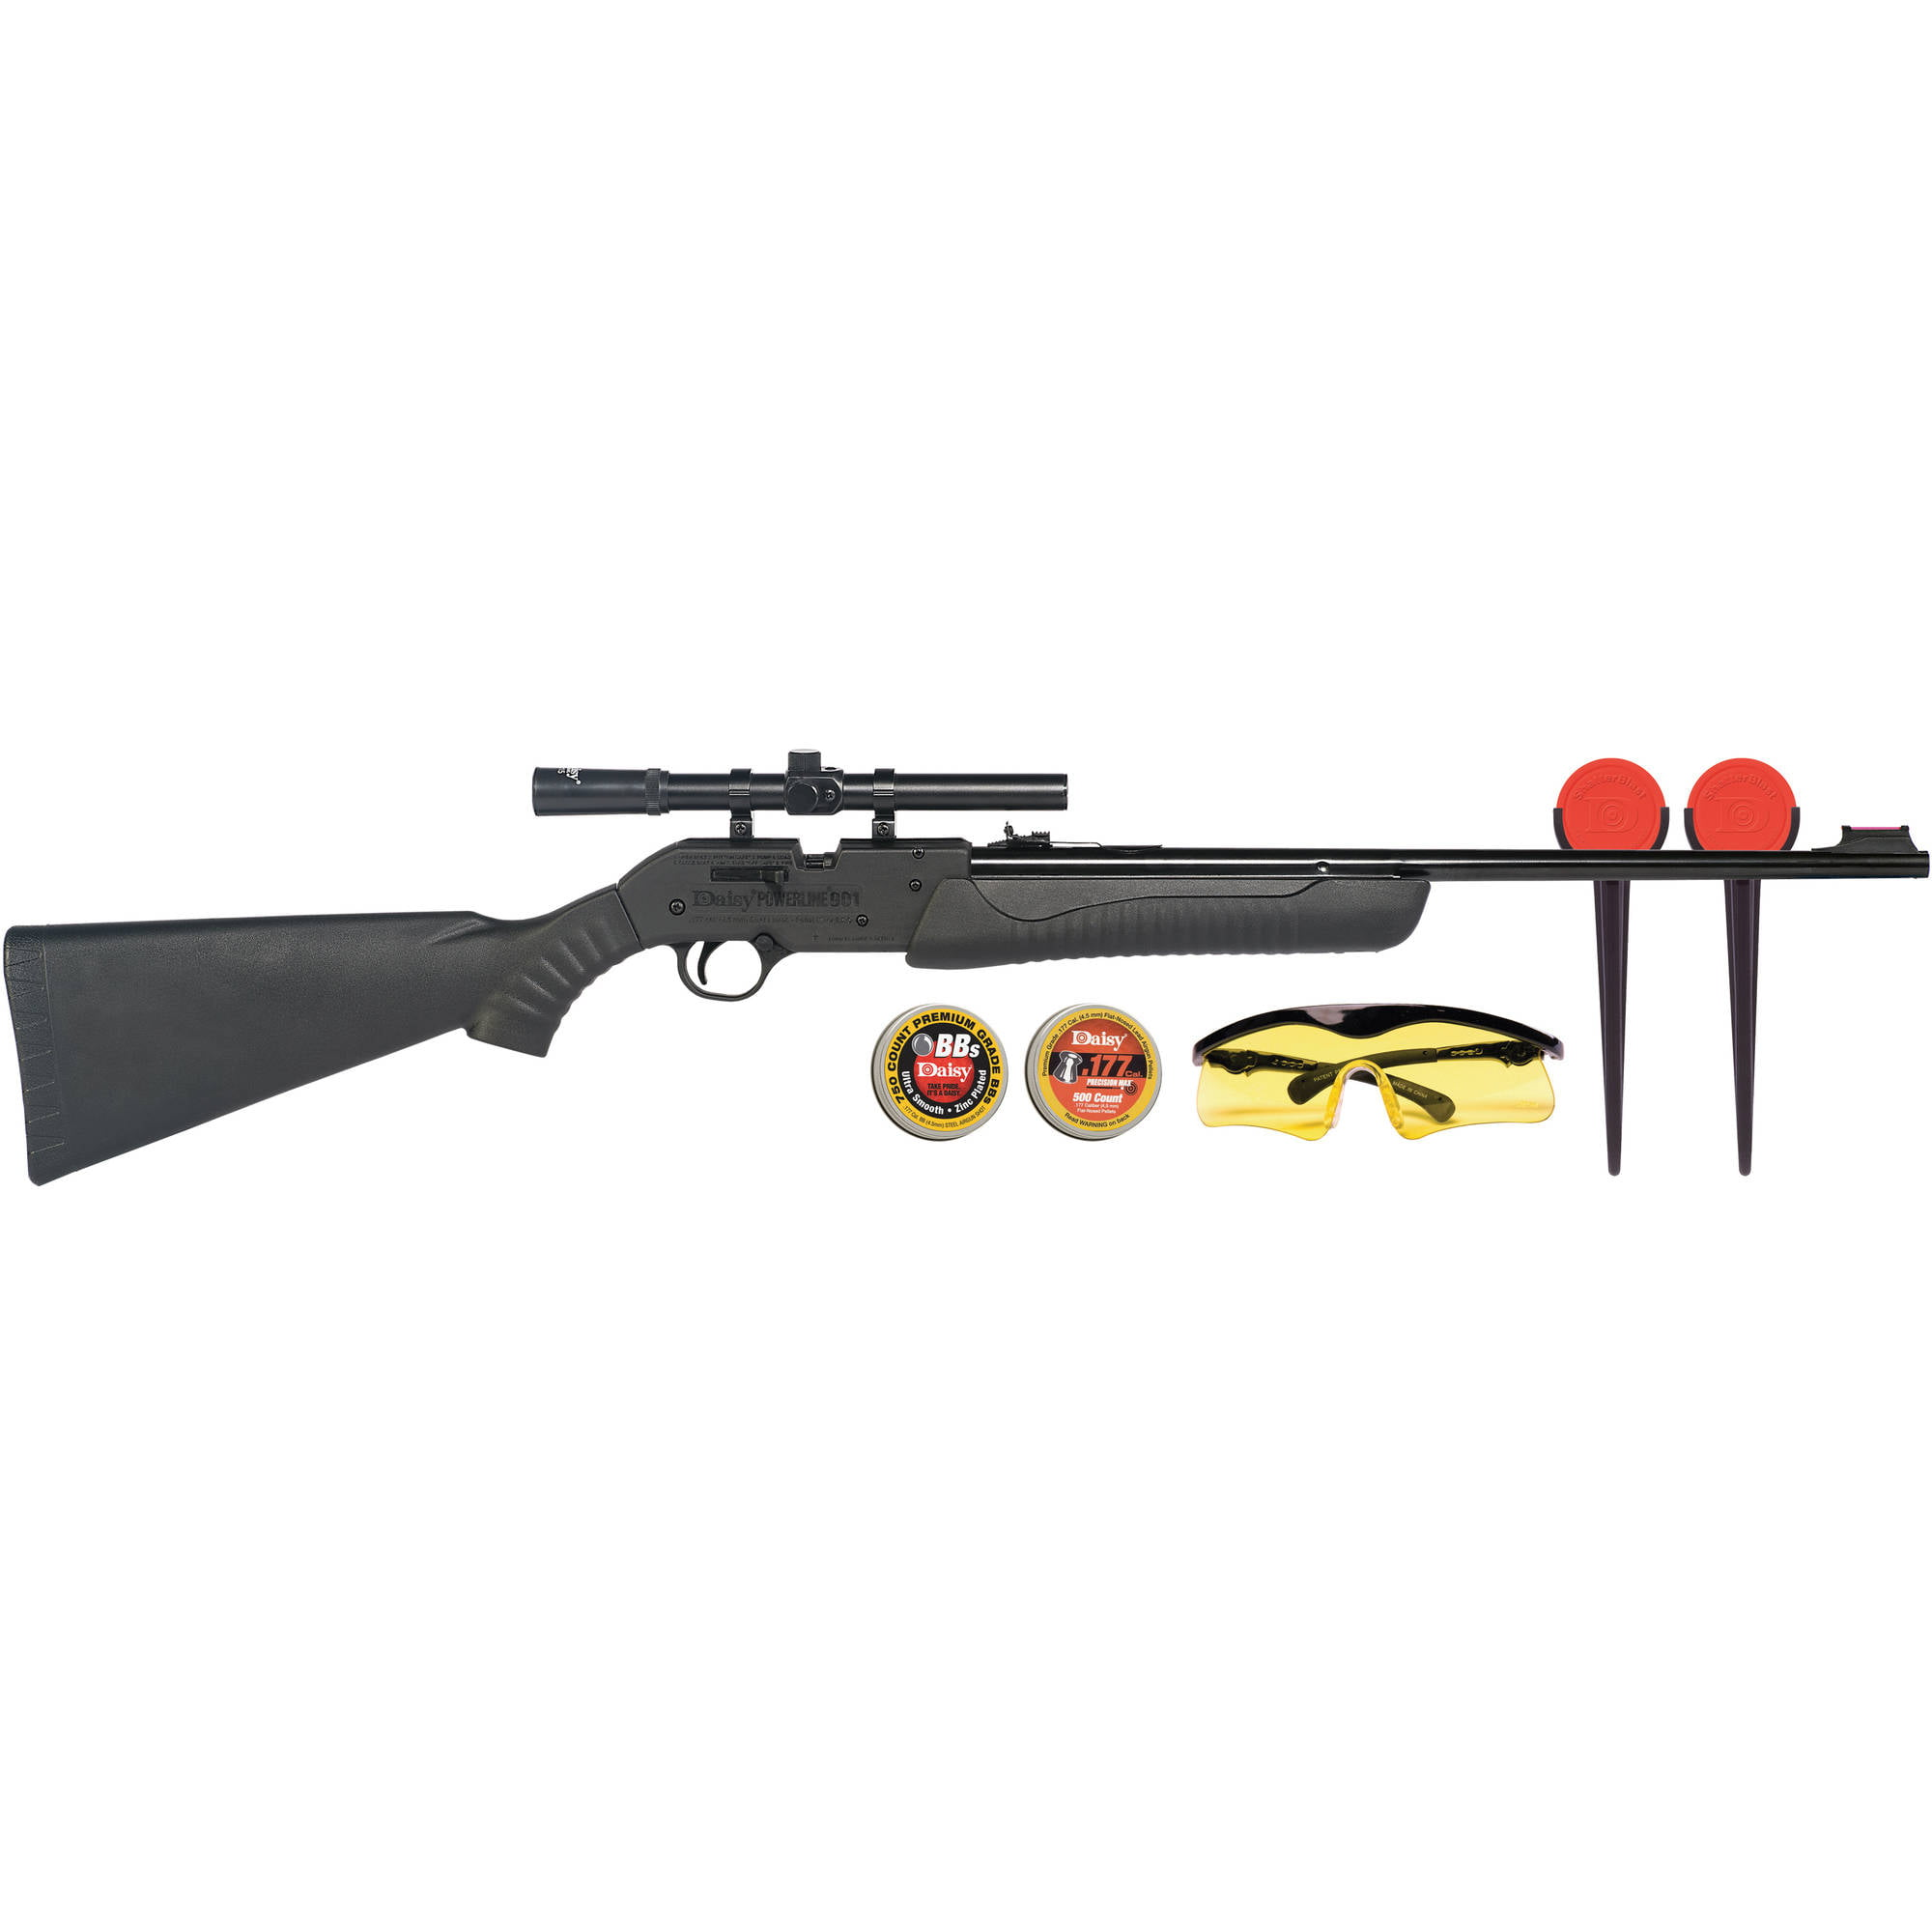 Daisy Powerline 901 Rifle Air Gun Kit by Daisy